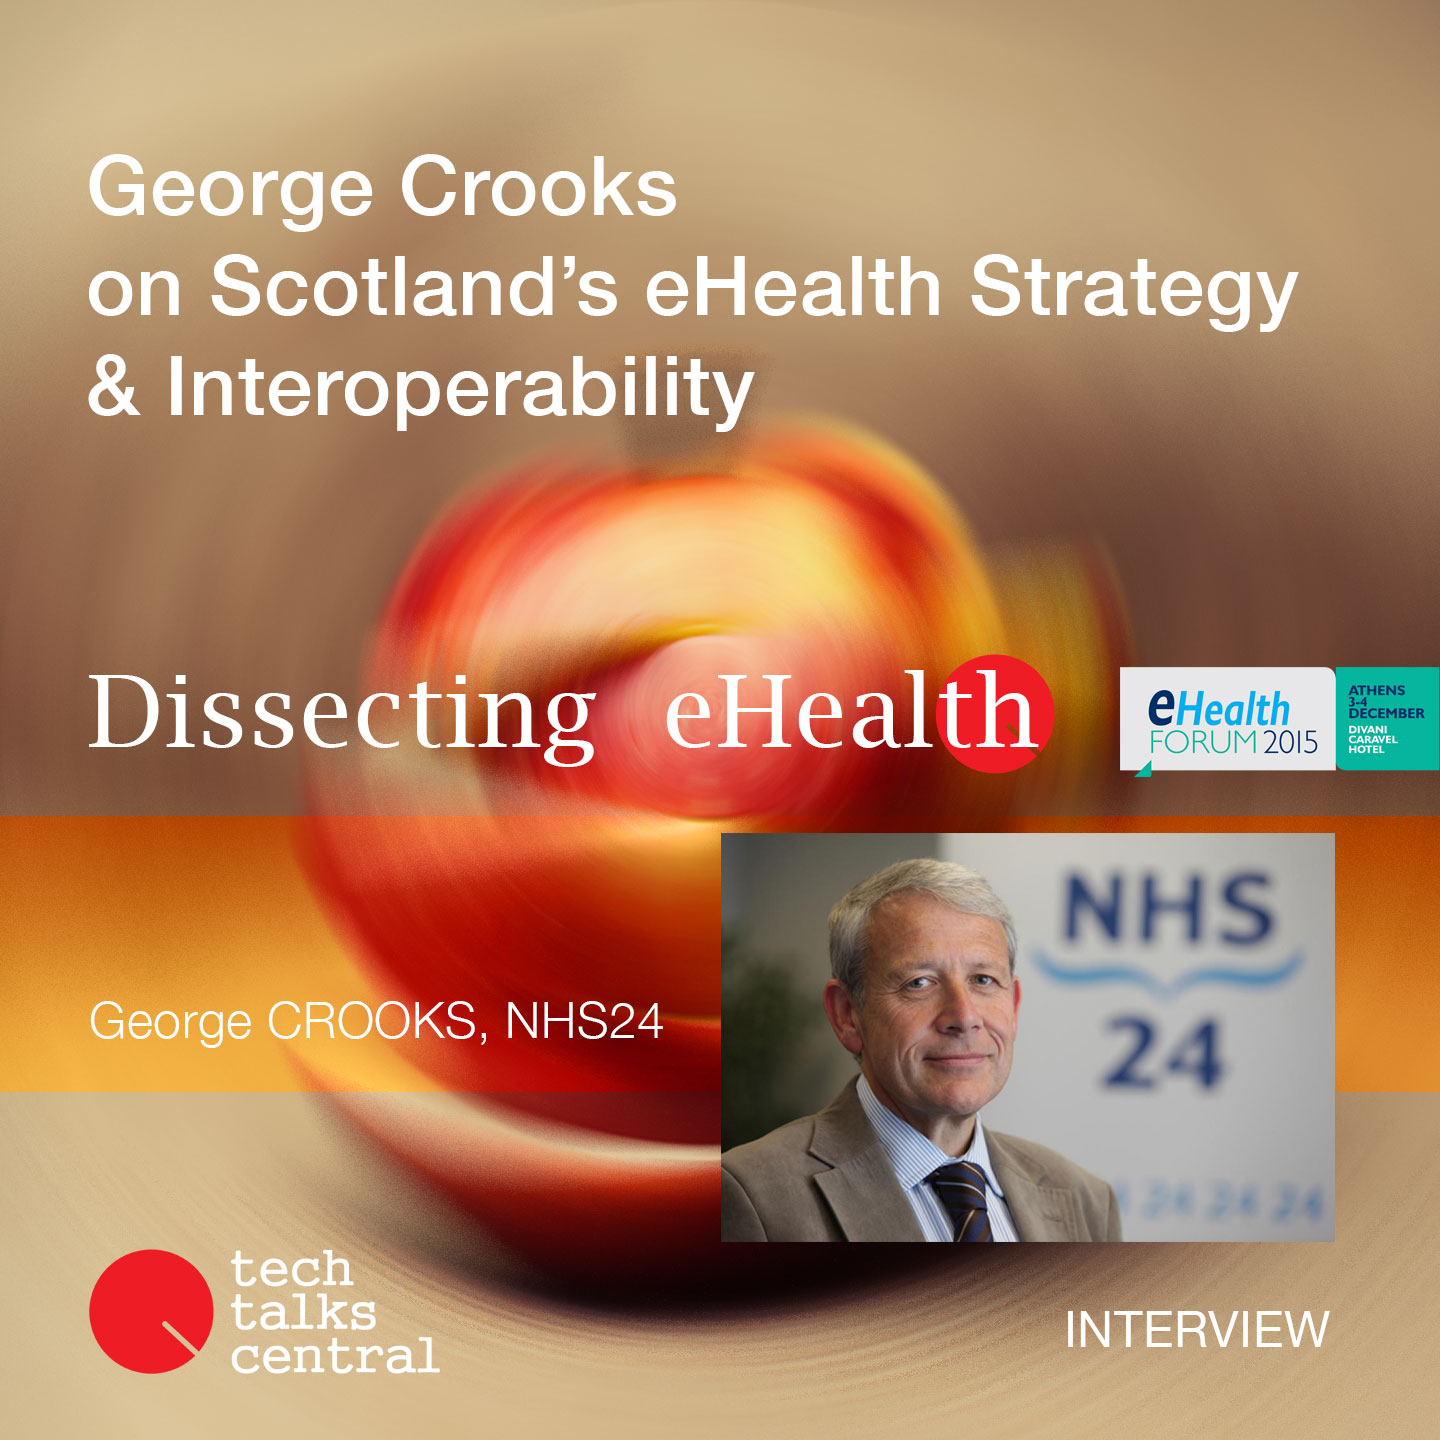 George Crooks on Scotland's eHealth Strategy & Interoperability